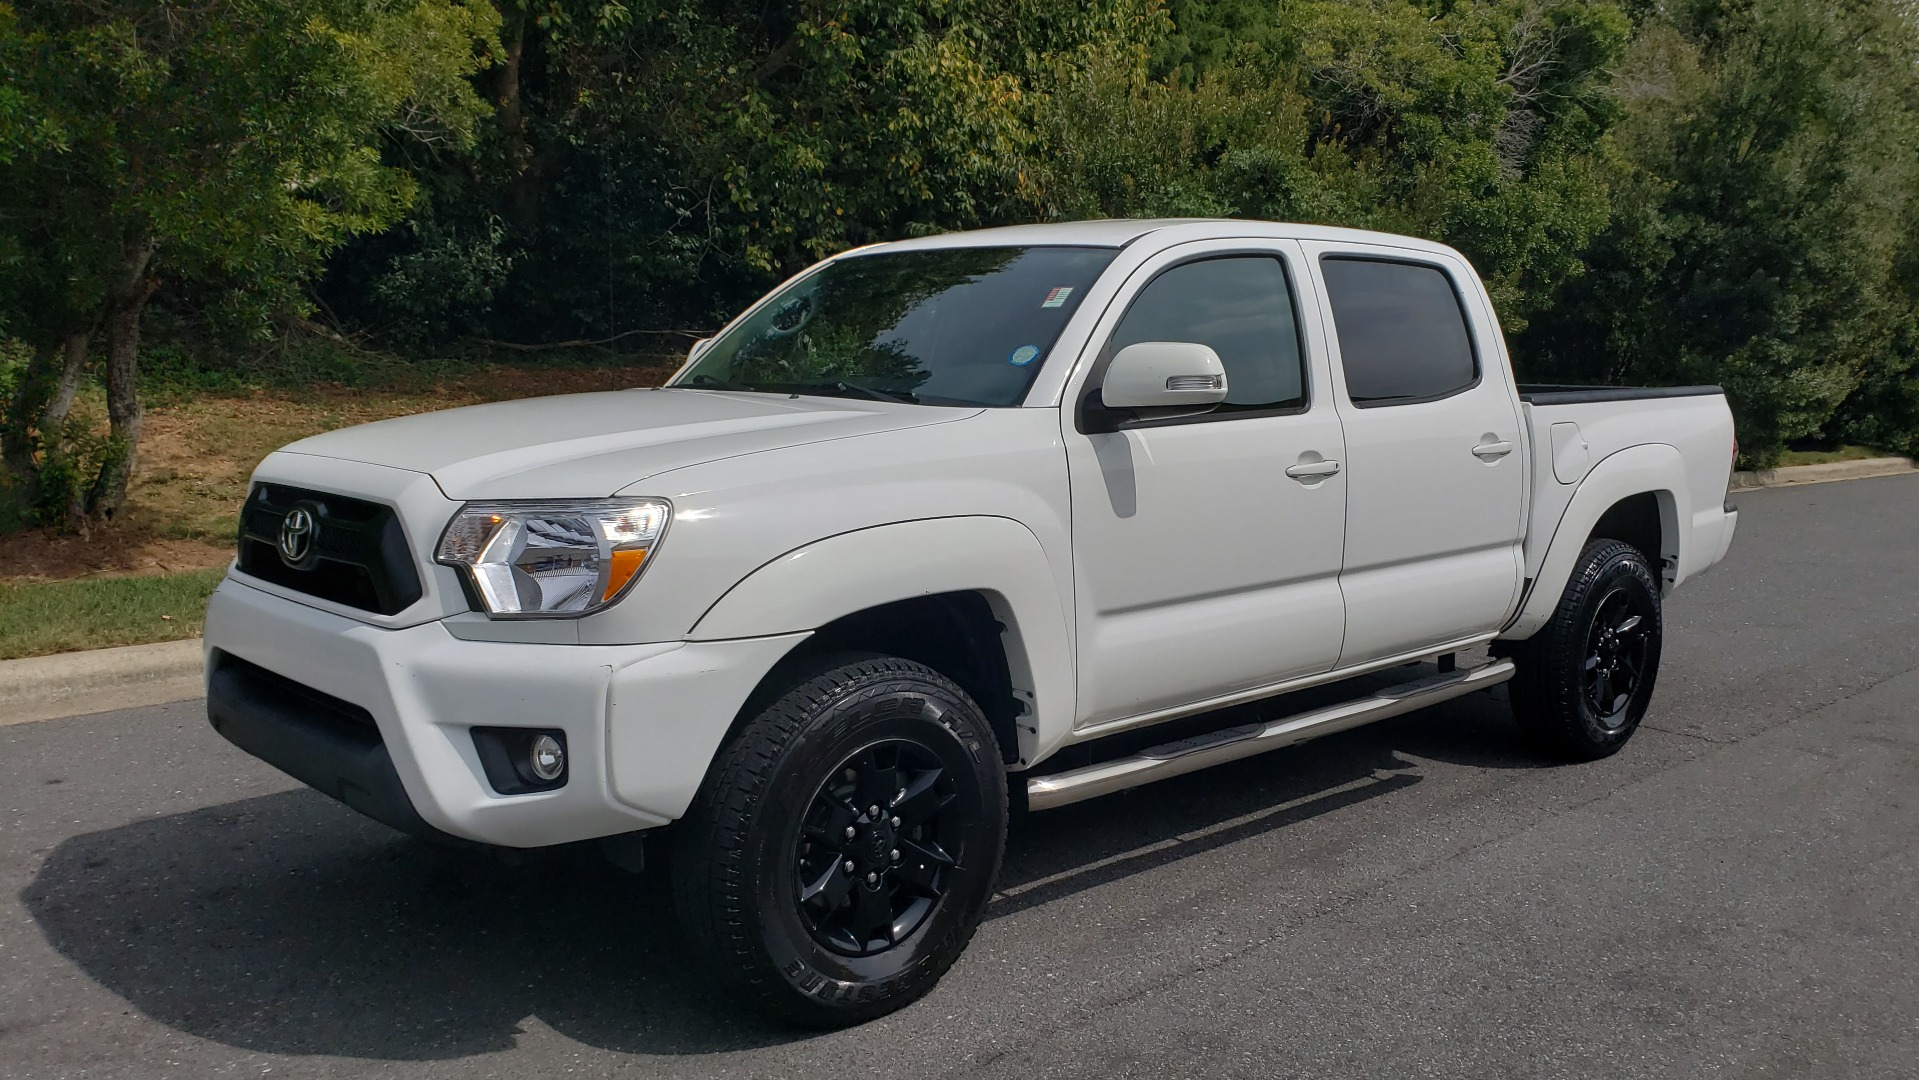 Used 2015 Toyota TACOMA PRERUNNER DOUBLE CAB/ 4-CYL / 4-SPD AUTO / SR PKG / CONV PKG for sale $15,995 at Formula Imports in Charlotte NC 28227 1